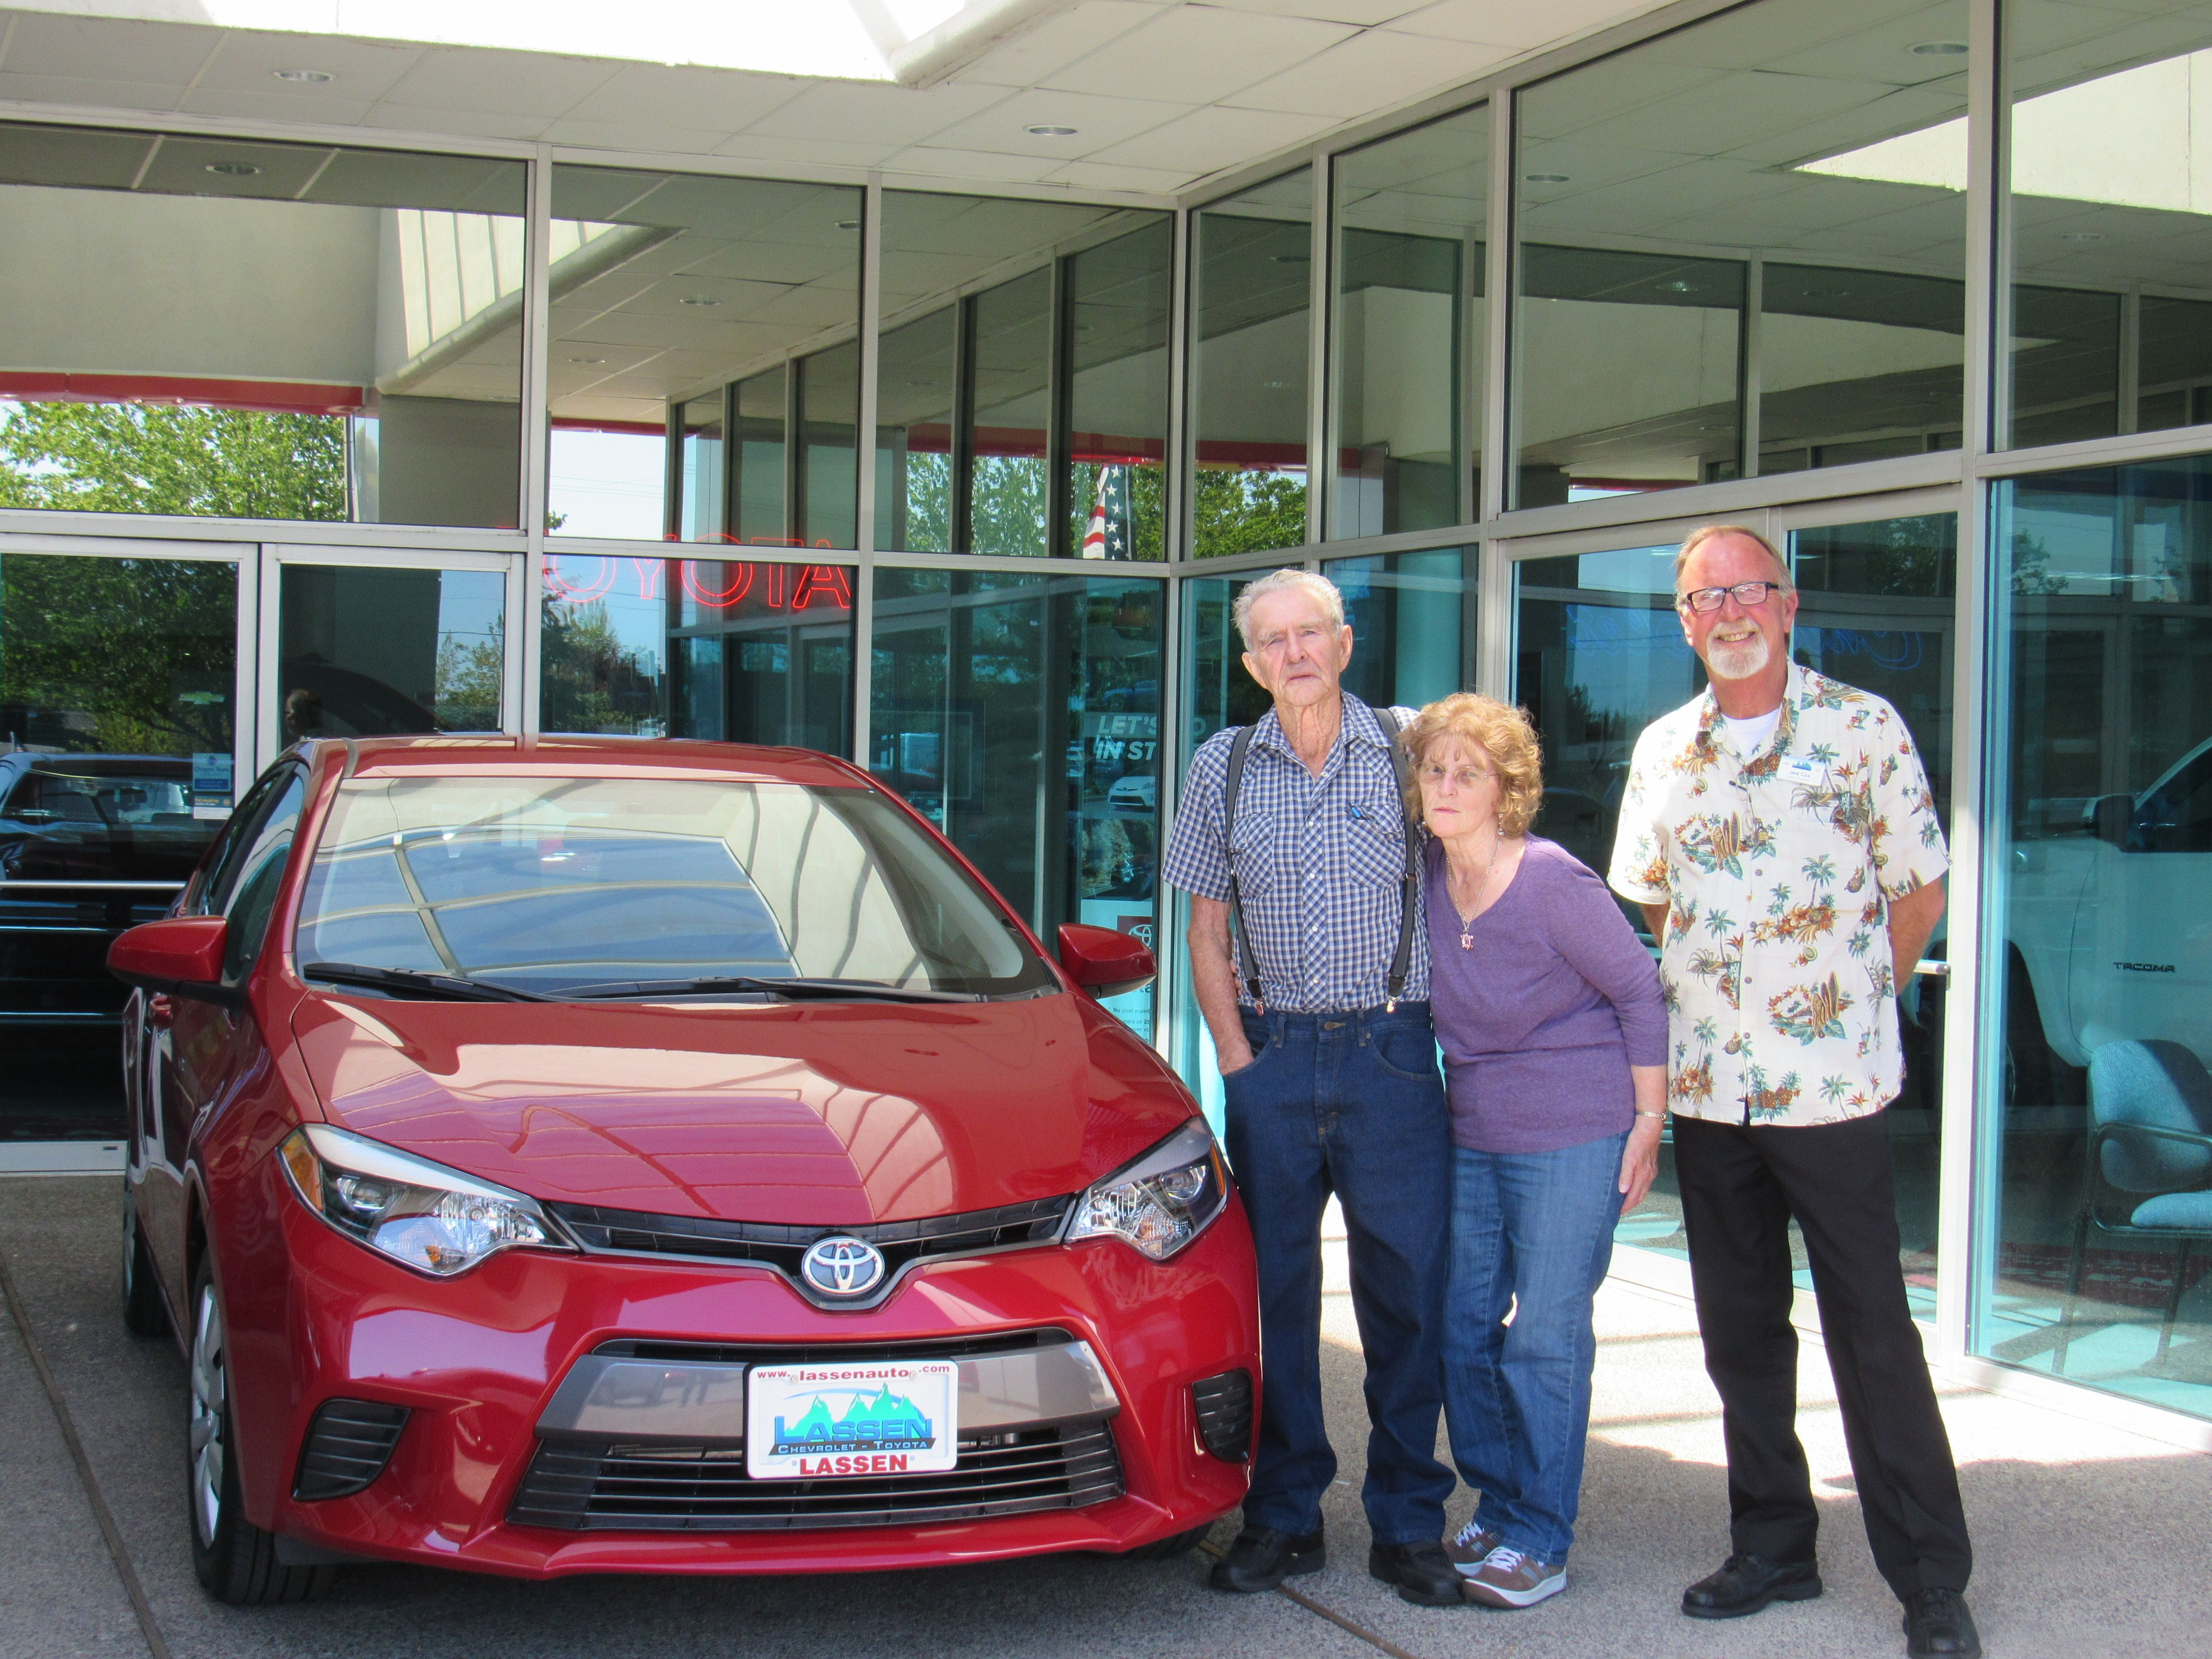 Congrats To Eleanor Holcomb For Buying This 2016 Toyota Corolla With Jere  Cox. Albany Oregon Cardealership Lassen Chevrolet/Toyota